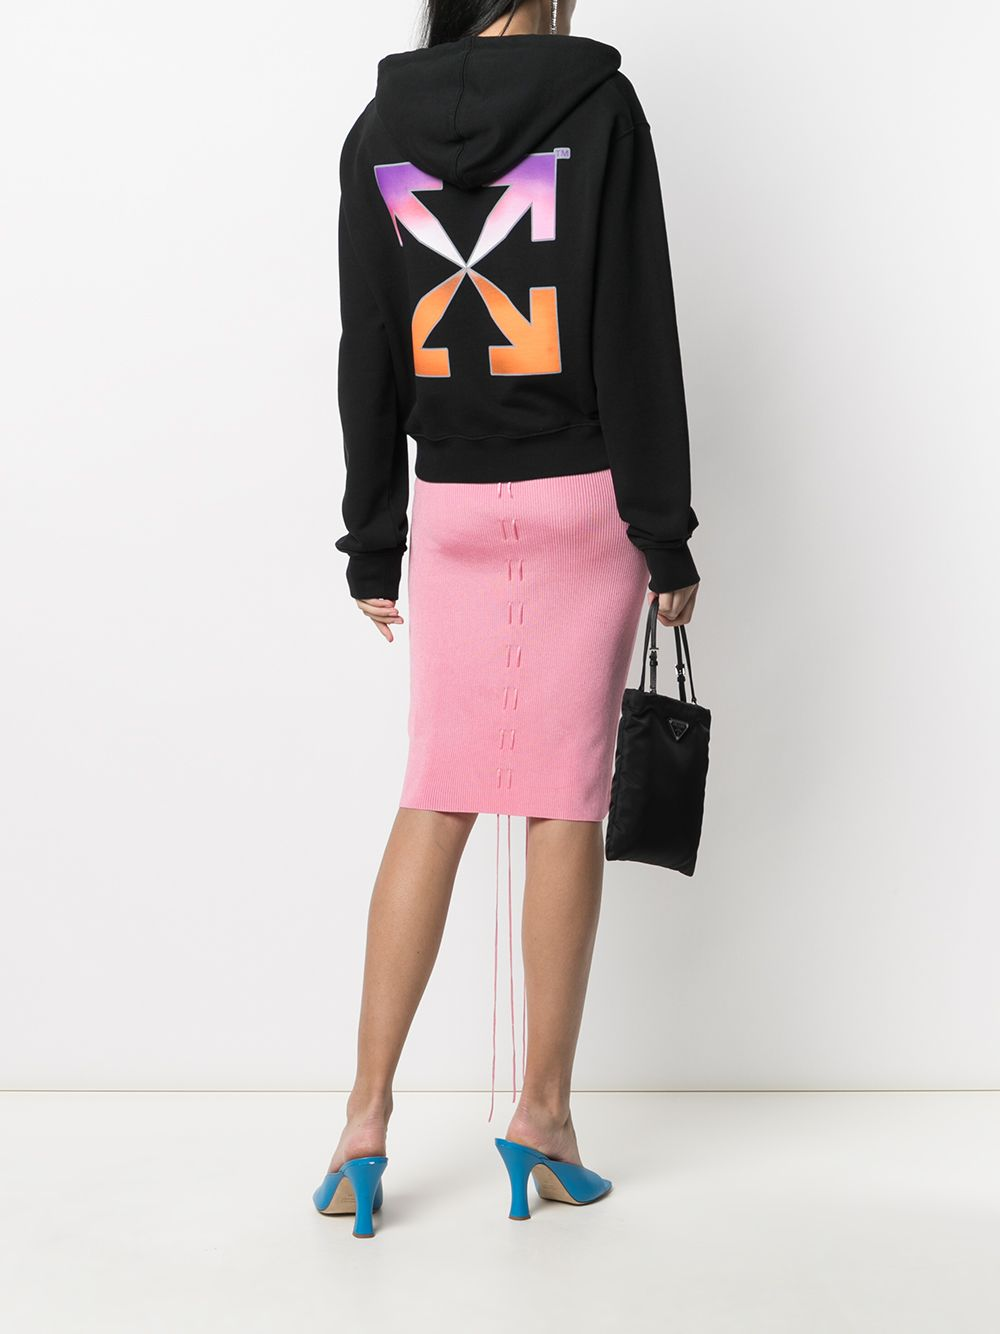 OFF-WHITE Women Gradient Crop Hoodie Black - Maison De Fashion